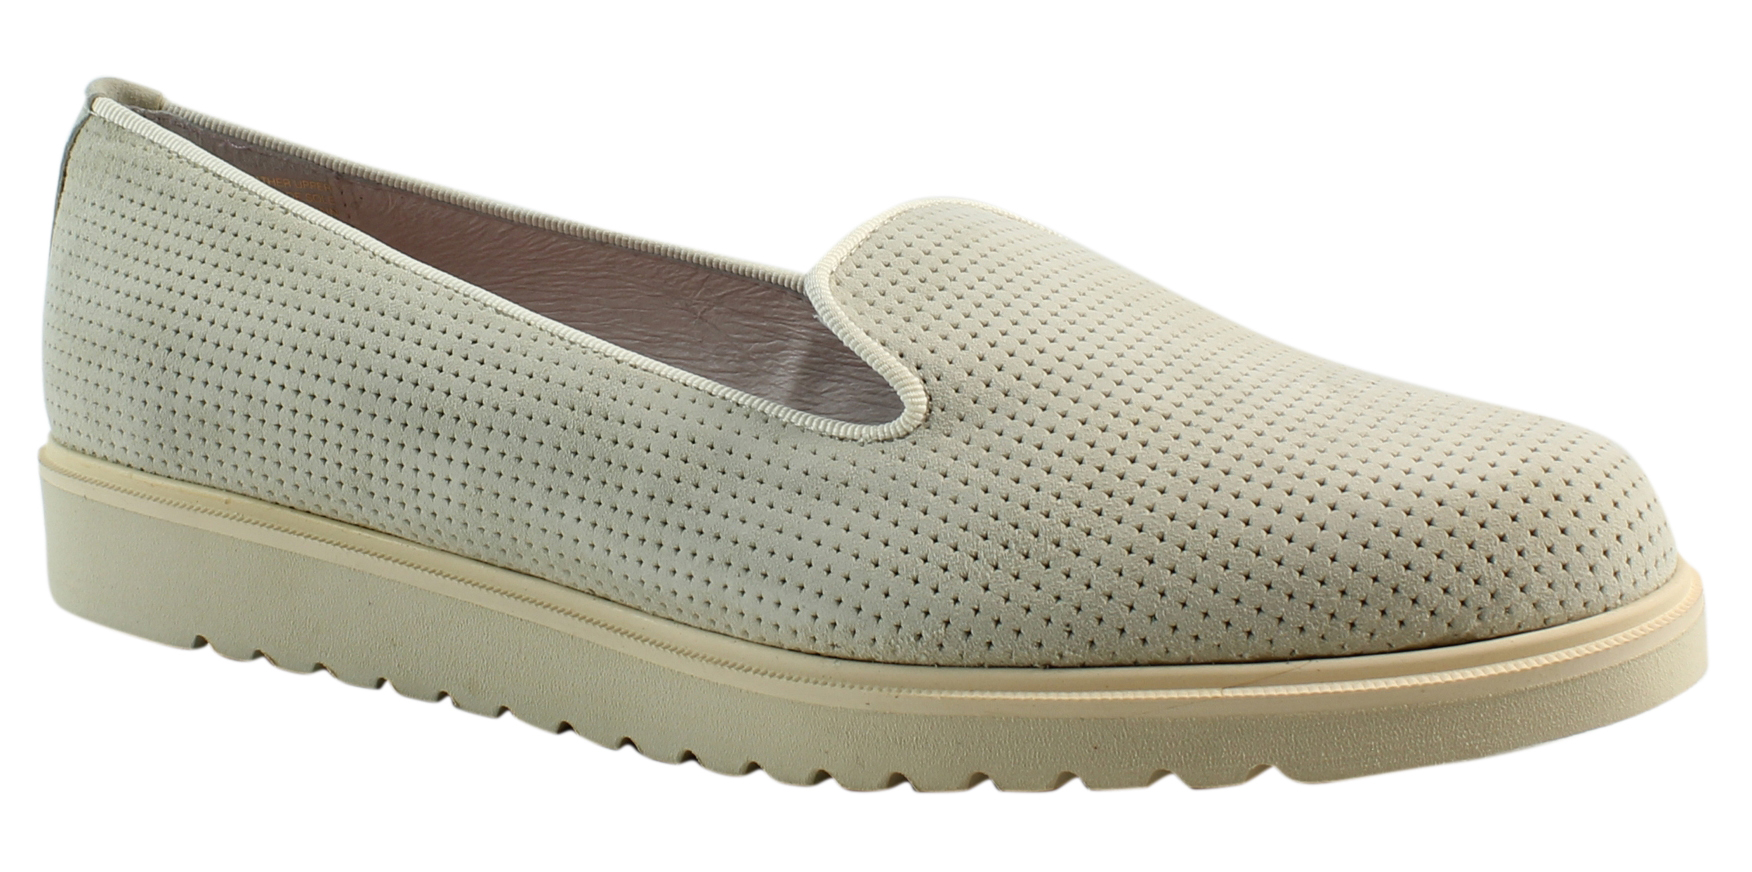 New Patricia Green Womens 83047 Bone Loafers Size 11